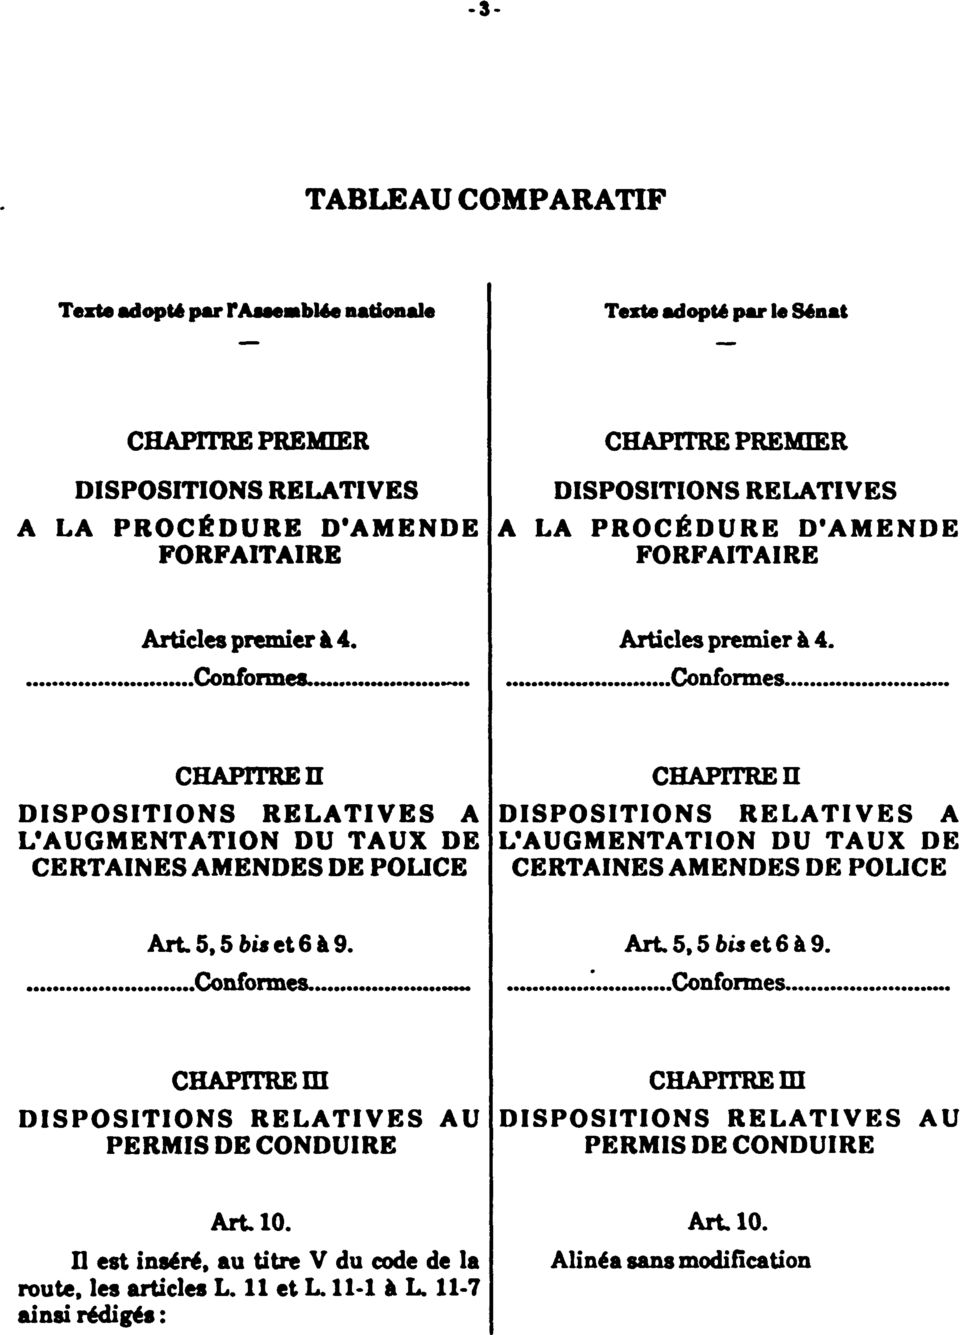 Articles premier à 4 Conformes CHAPITRE II DISPOSITIONS RELATIVES A L'AUGMENTATION DU TAUX DE CERTAINES AMENDES DE POLICE CHAPITRE H DISPOSITIONS RELATIVES A L'AUGMENTATION DU